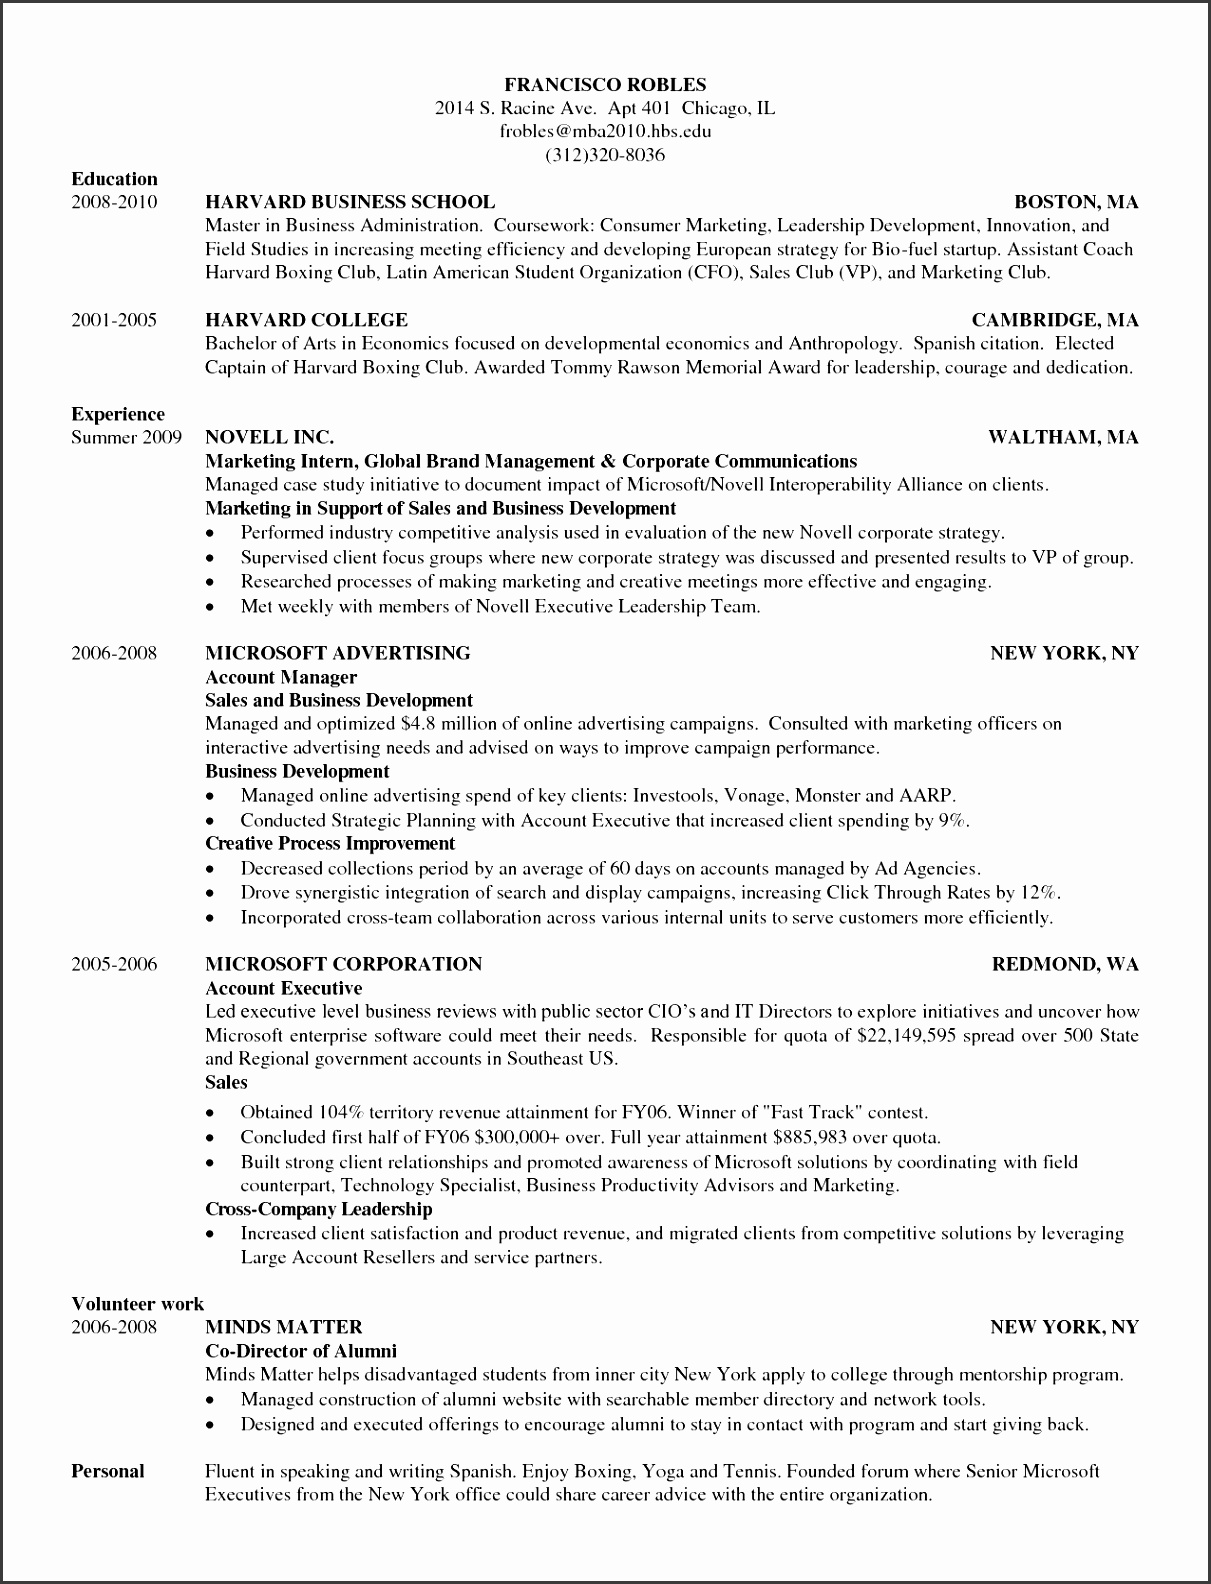 Mc bs Resume format Inspirational Ideas School Improvement Plan Template Also School Improvement